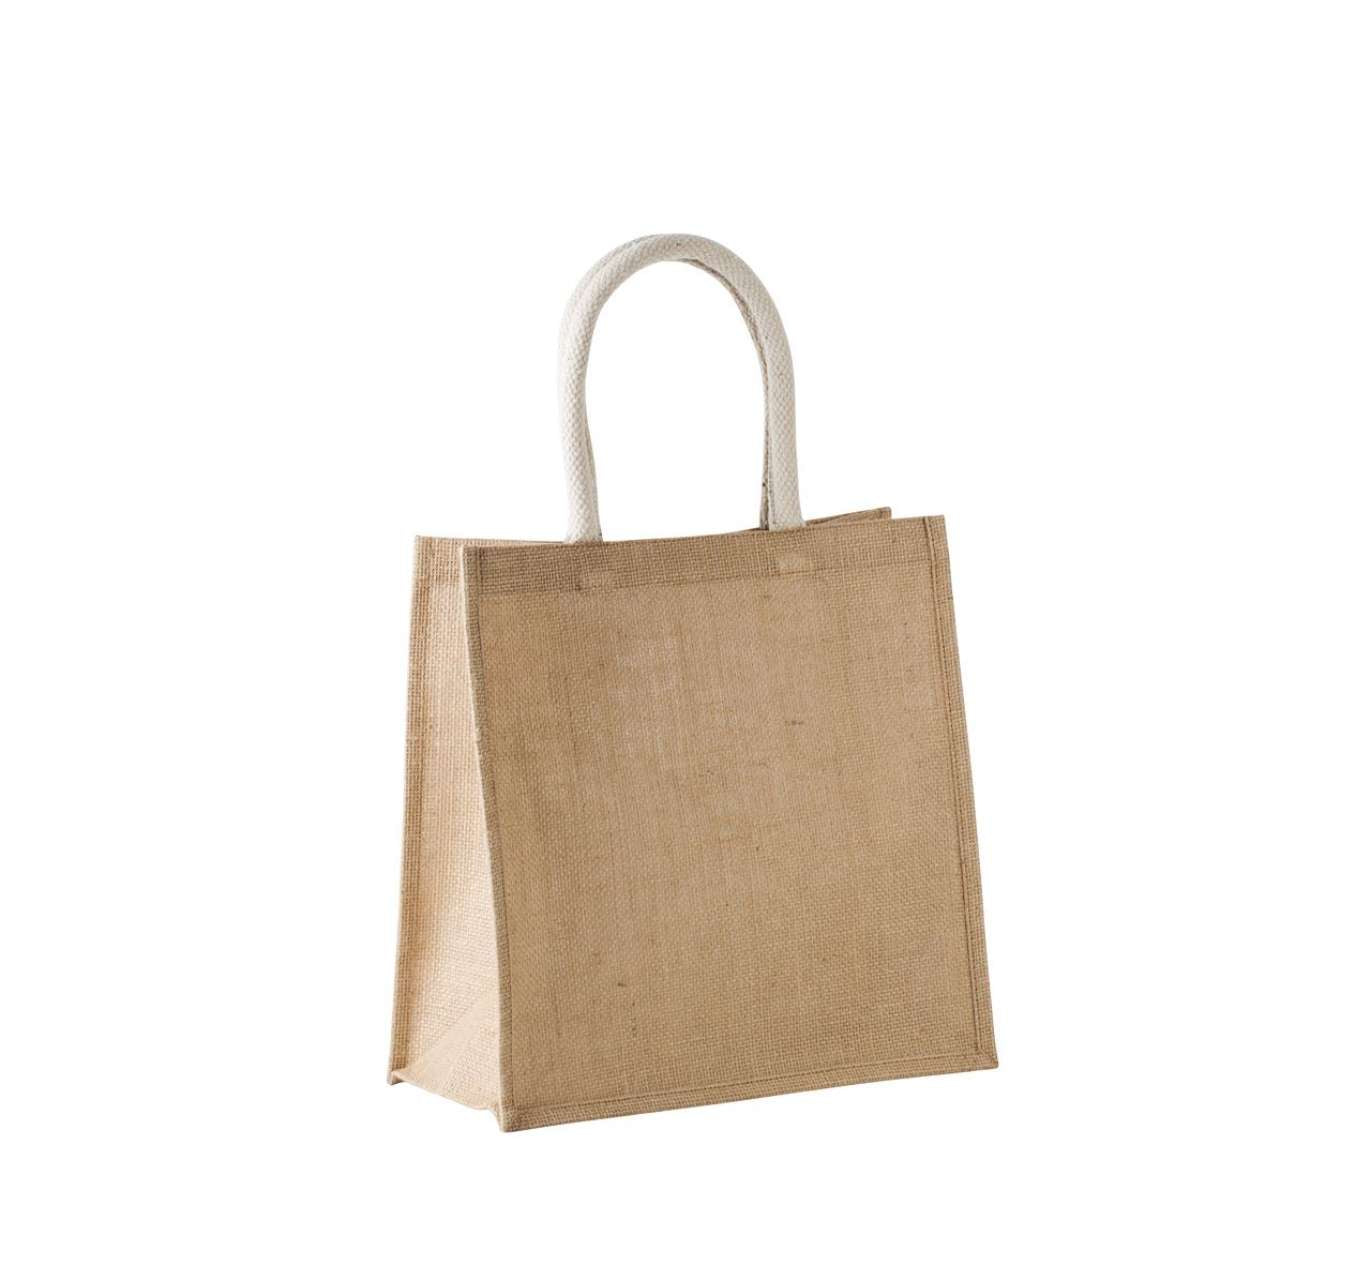 JUTE CANVAS TOTE SHOPPING BAG - LARGE